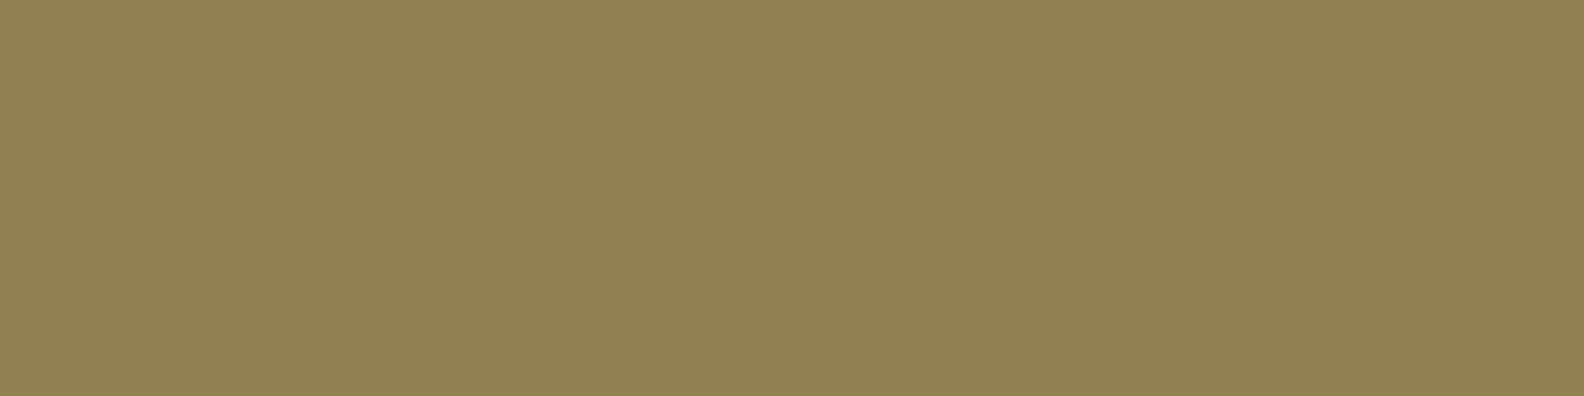 1584x396 Dark Tan Solid Color Background